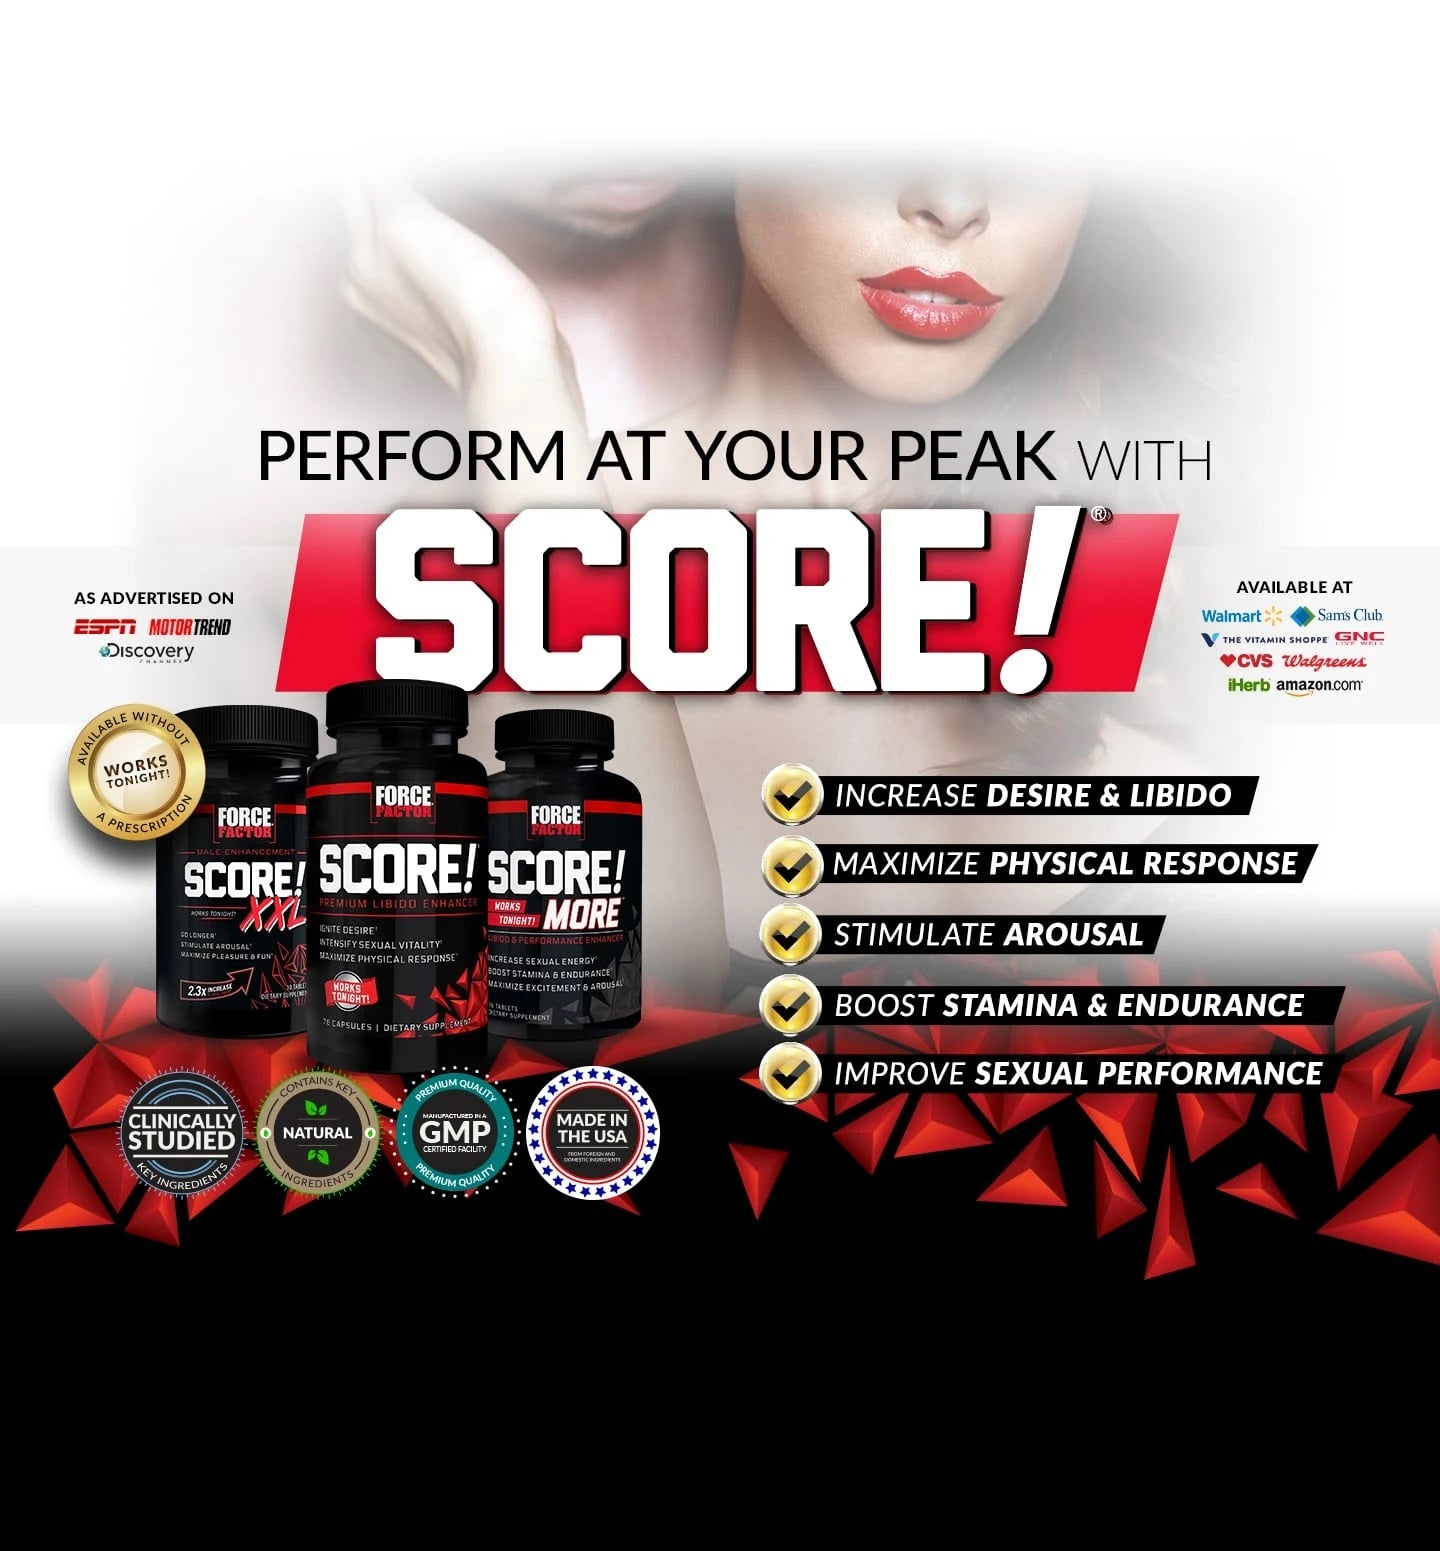 PERFORM AT YOUR PEAK WITH SCORE!®. INCRERASE DESIRE & LIBIDO, MAXIMIZE PHYSICAL RESPONSE, STIMULATE AROUSAL, BOOST STAMINA & ENDURANCE, IMPROVE SEXUAL PERFORMANCE.